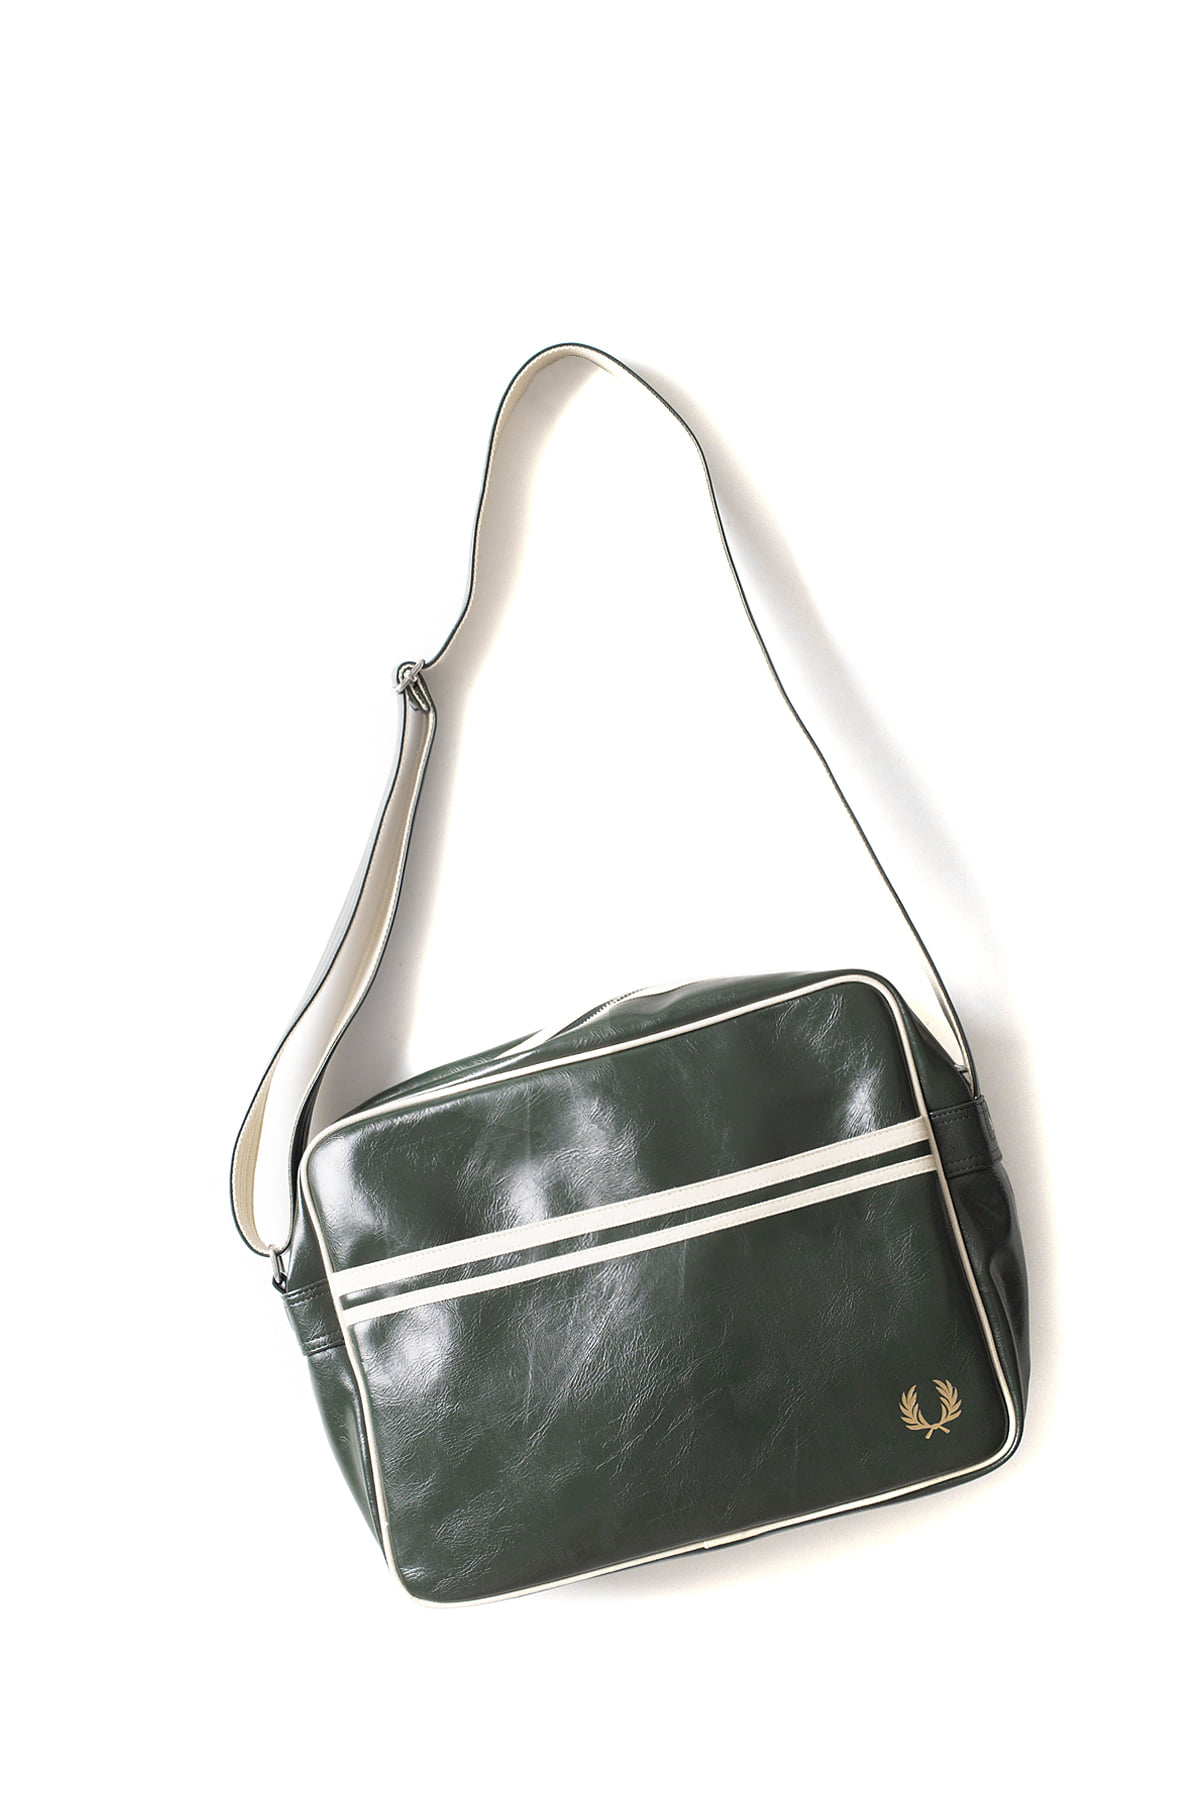 FRED PERRY : Classic Shoulder Bag (Deep Forest / Ecru)